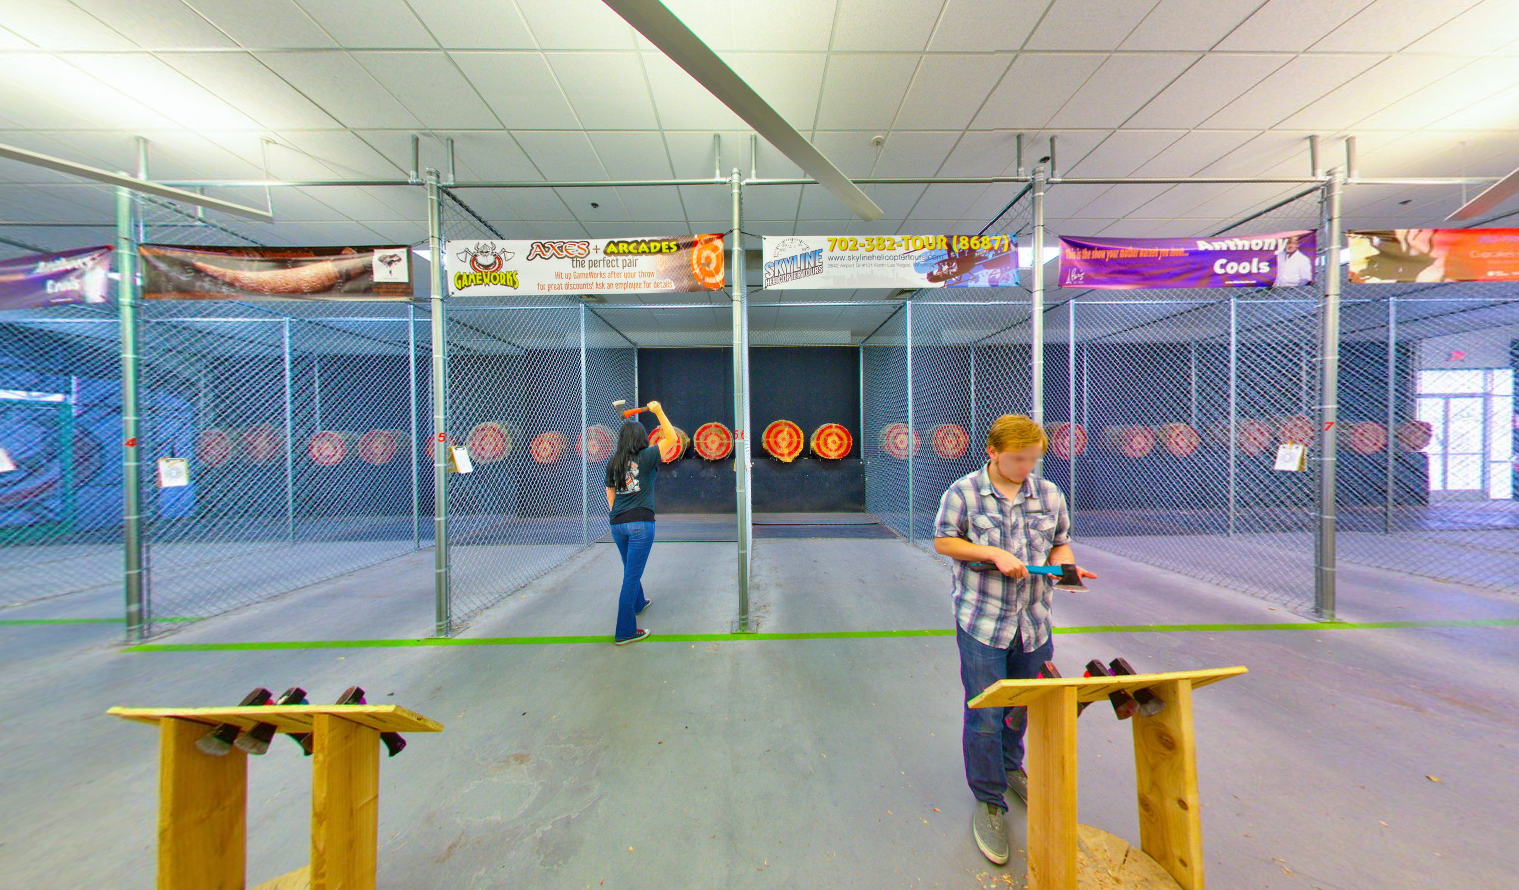 Two players in the activity area of Axe Monkeys - a sports complex in Nevada with indoor axe throwing facility